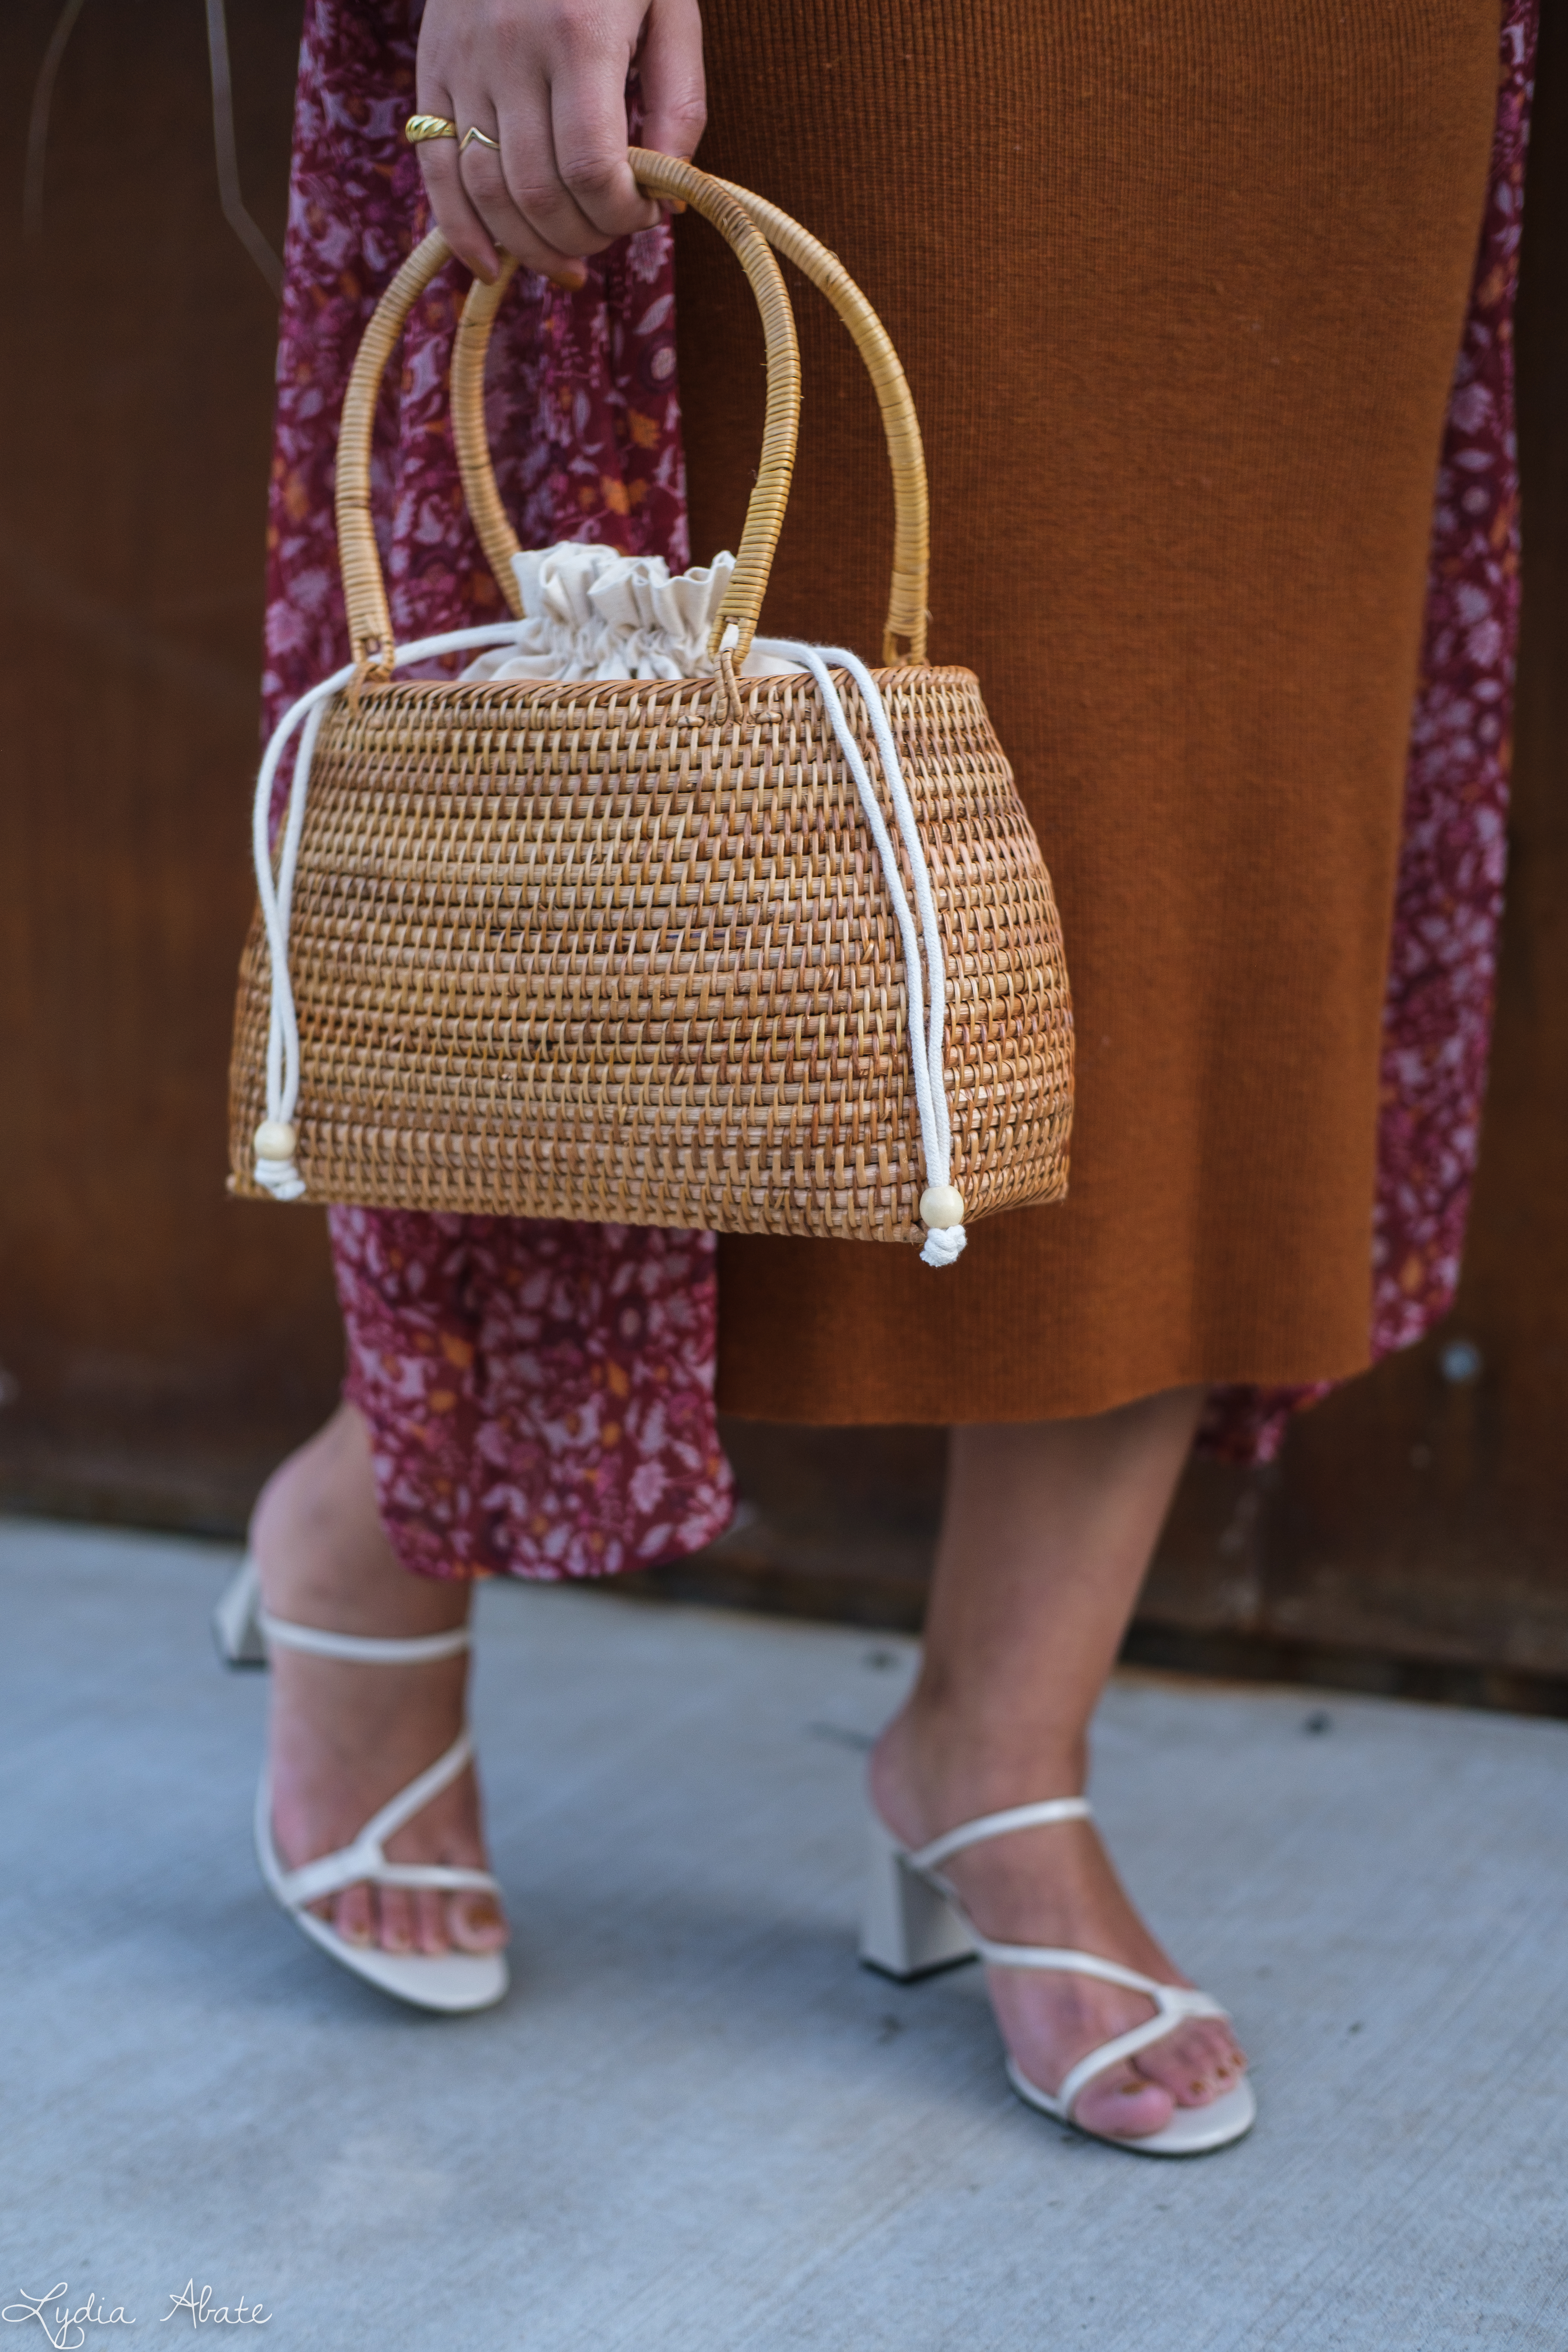 rust knit sheath dress, red floral kimono, basket bag, strappy sandals-11.jpg